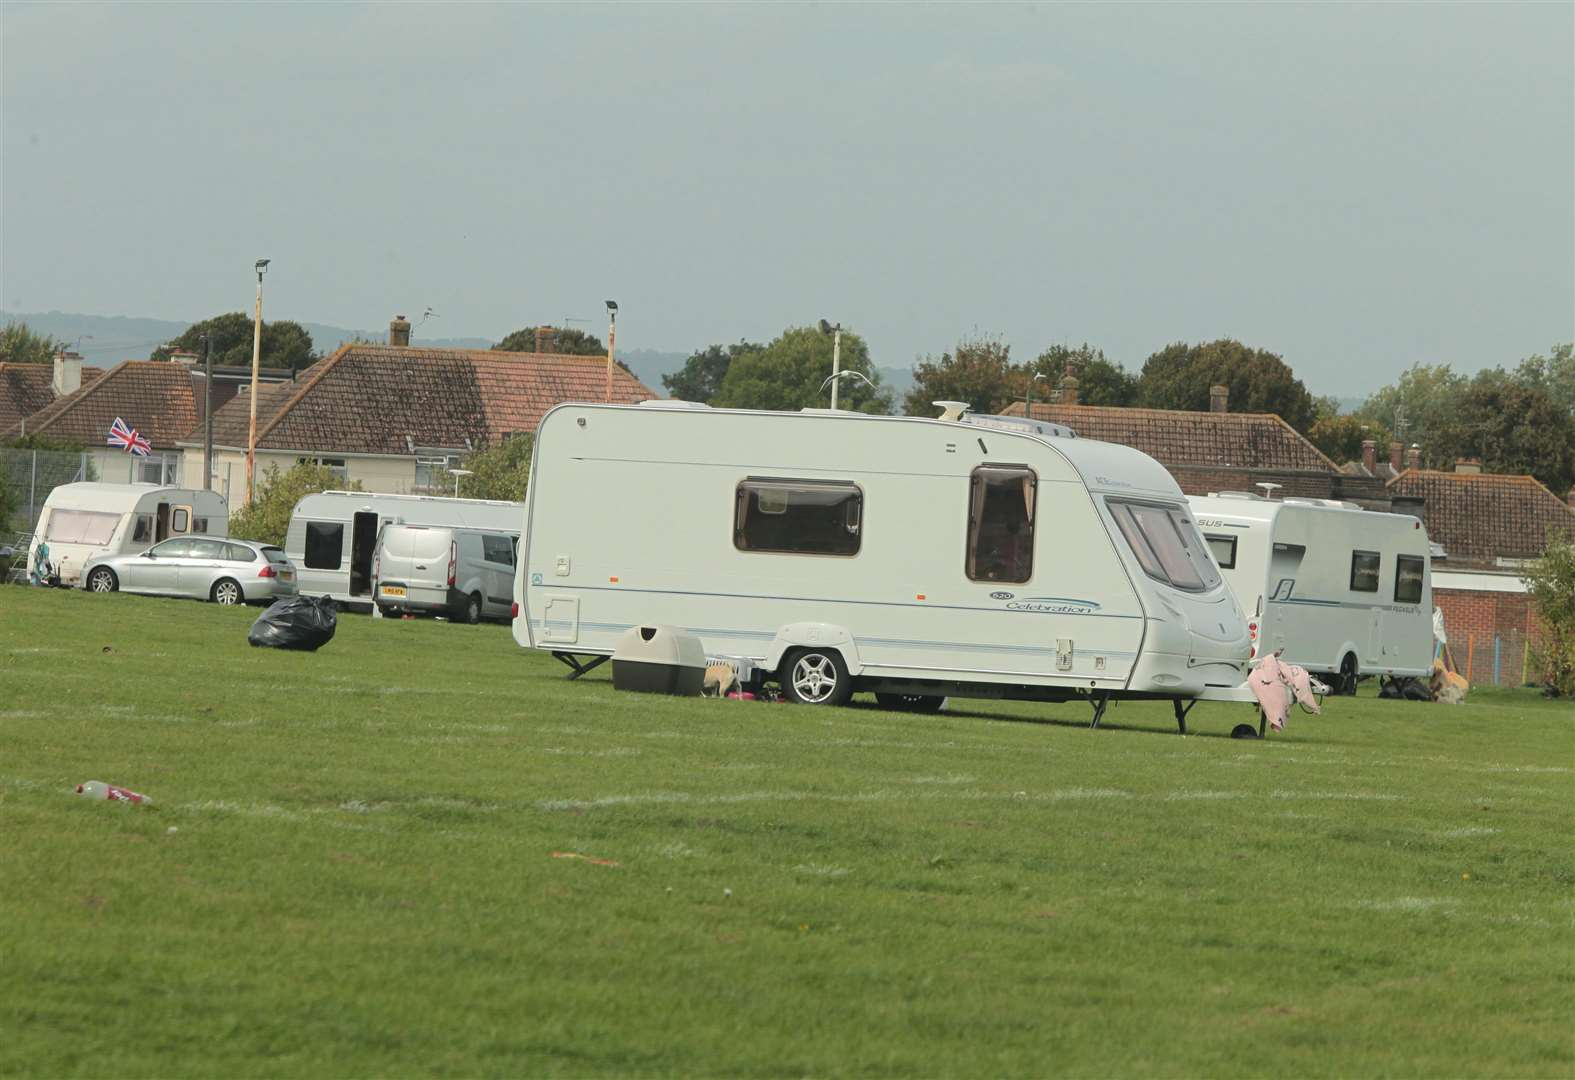 Illegal traveller caravans in West Norfolk